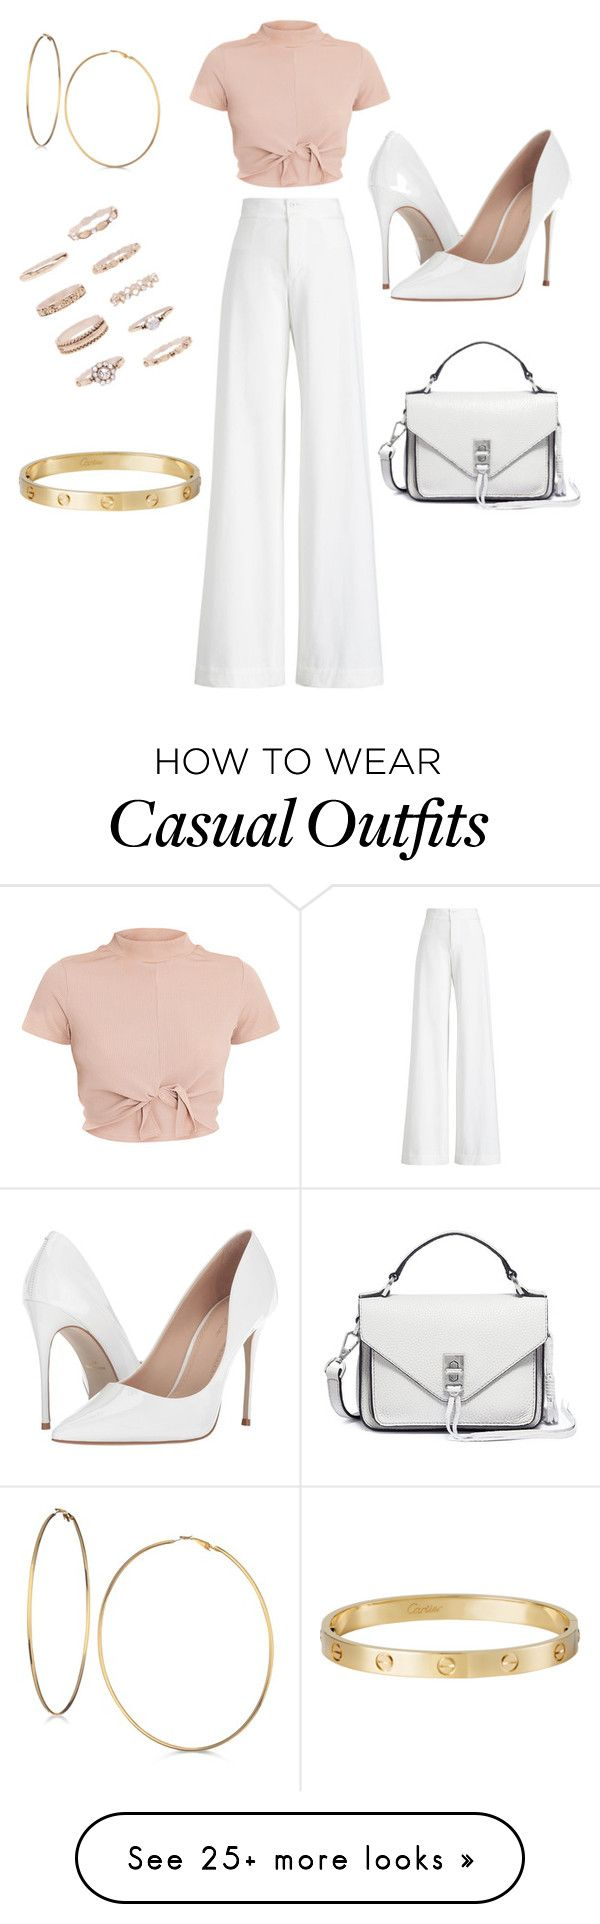 """Casual"" by sierra-braun on Polyvore featuring Ralph Lauren Collection, Massimo Matteo, GUESS, Forever 21, Cartier and Rebecca Minkoff"